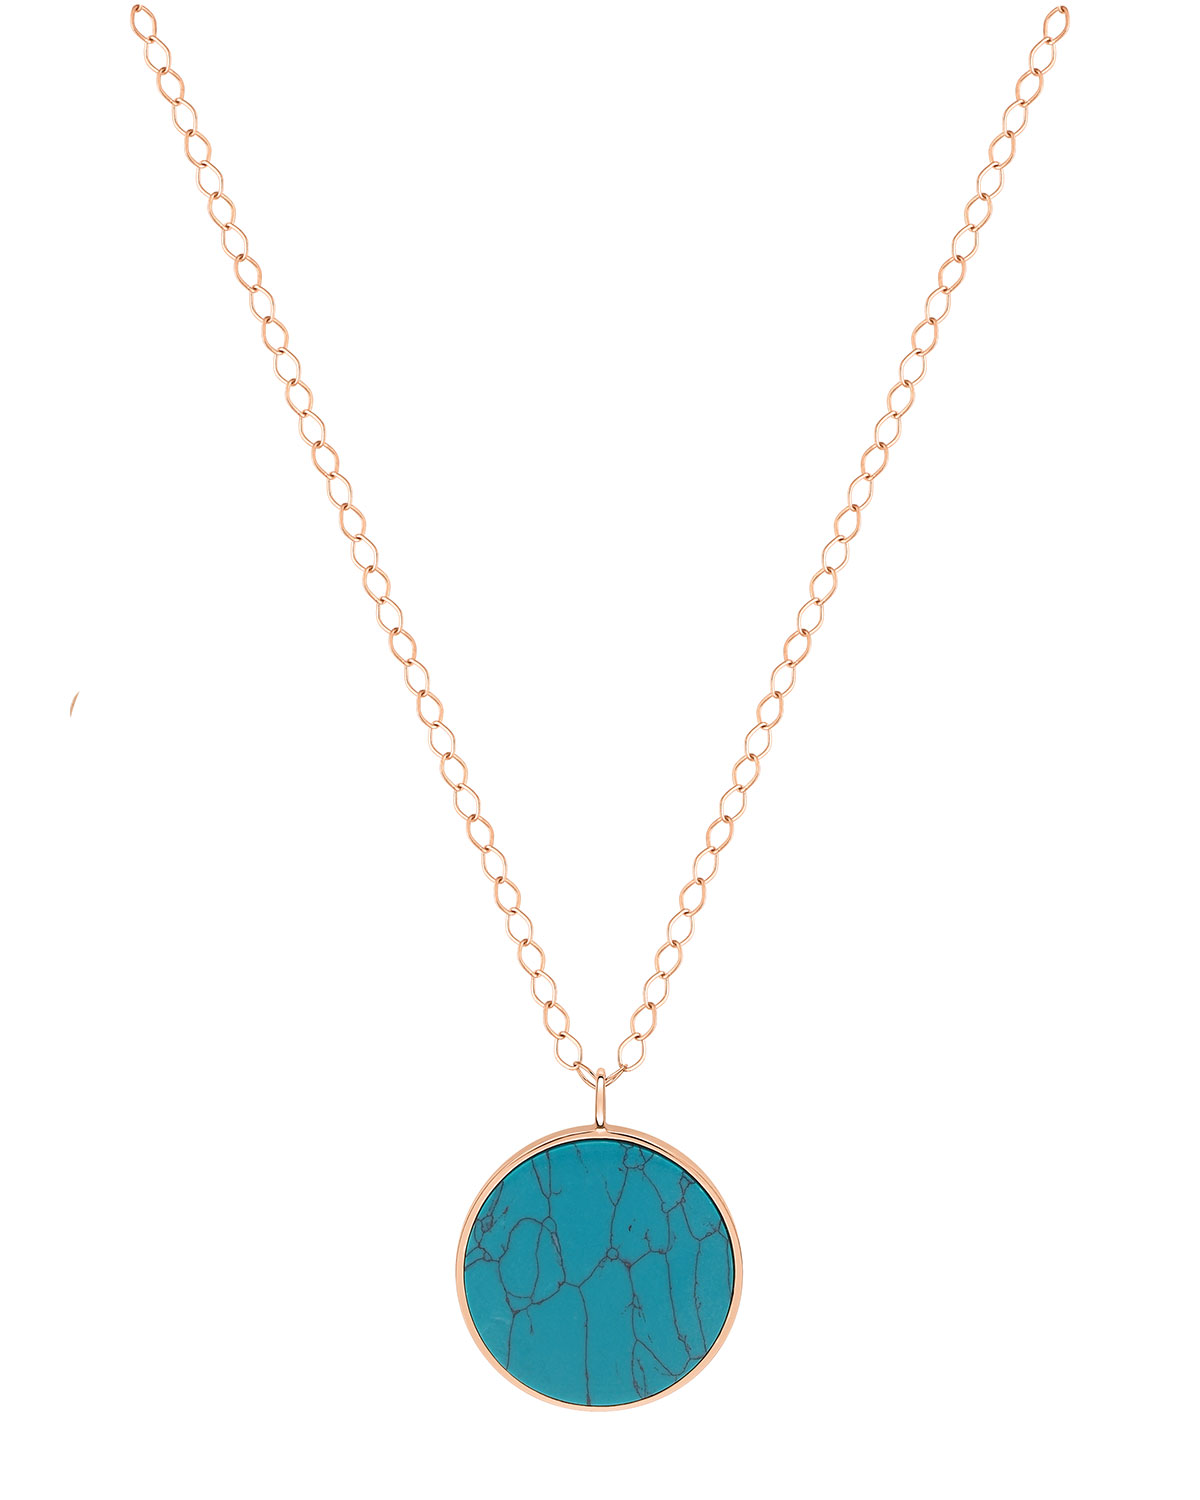 Jumbo Turquoise Disc on Chain Necklace